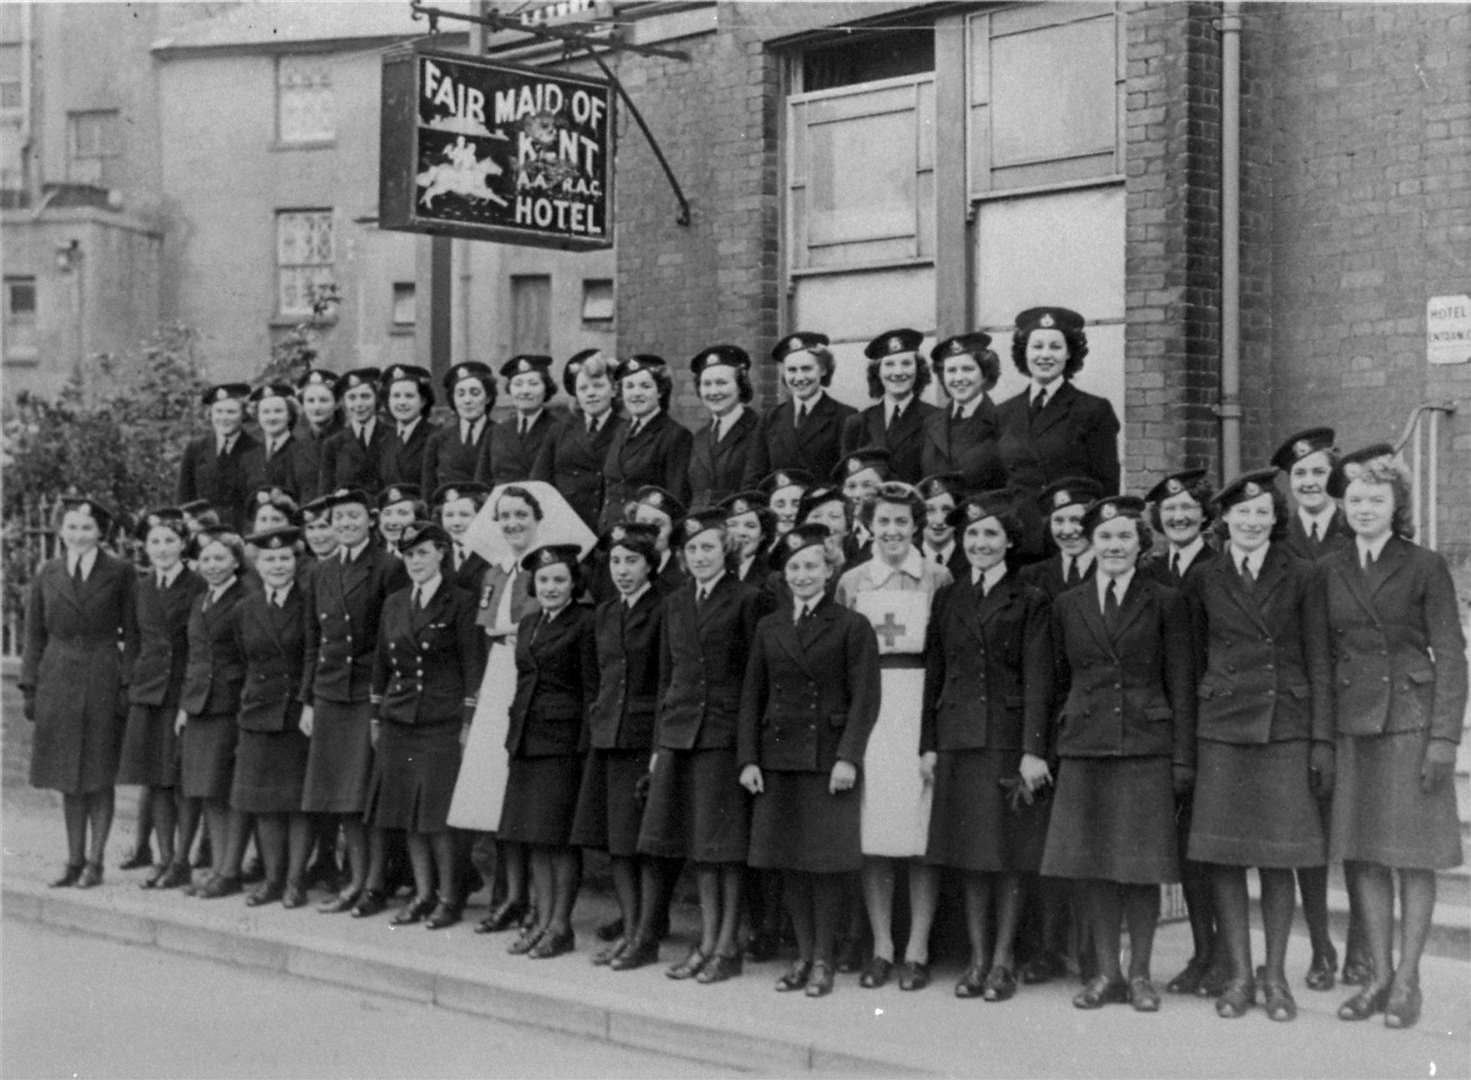 From 1941, even women had to join up. These are Royal Marine Wrens at Walmer